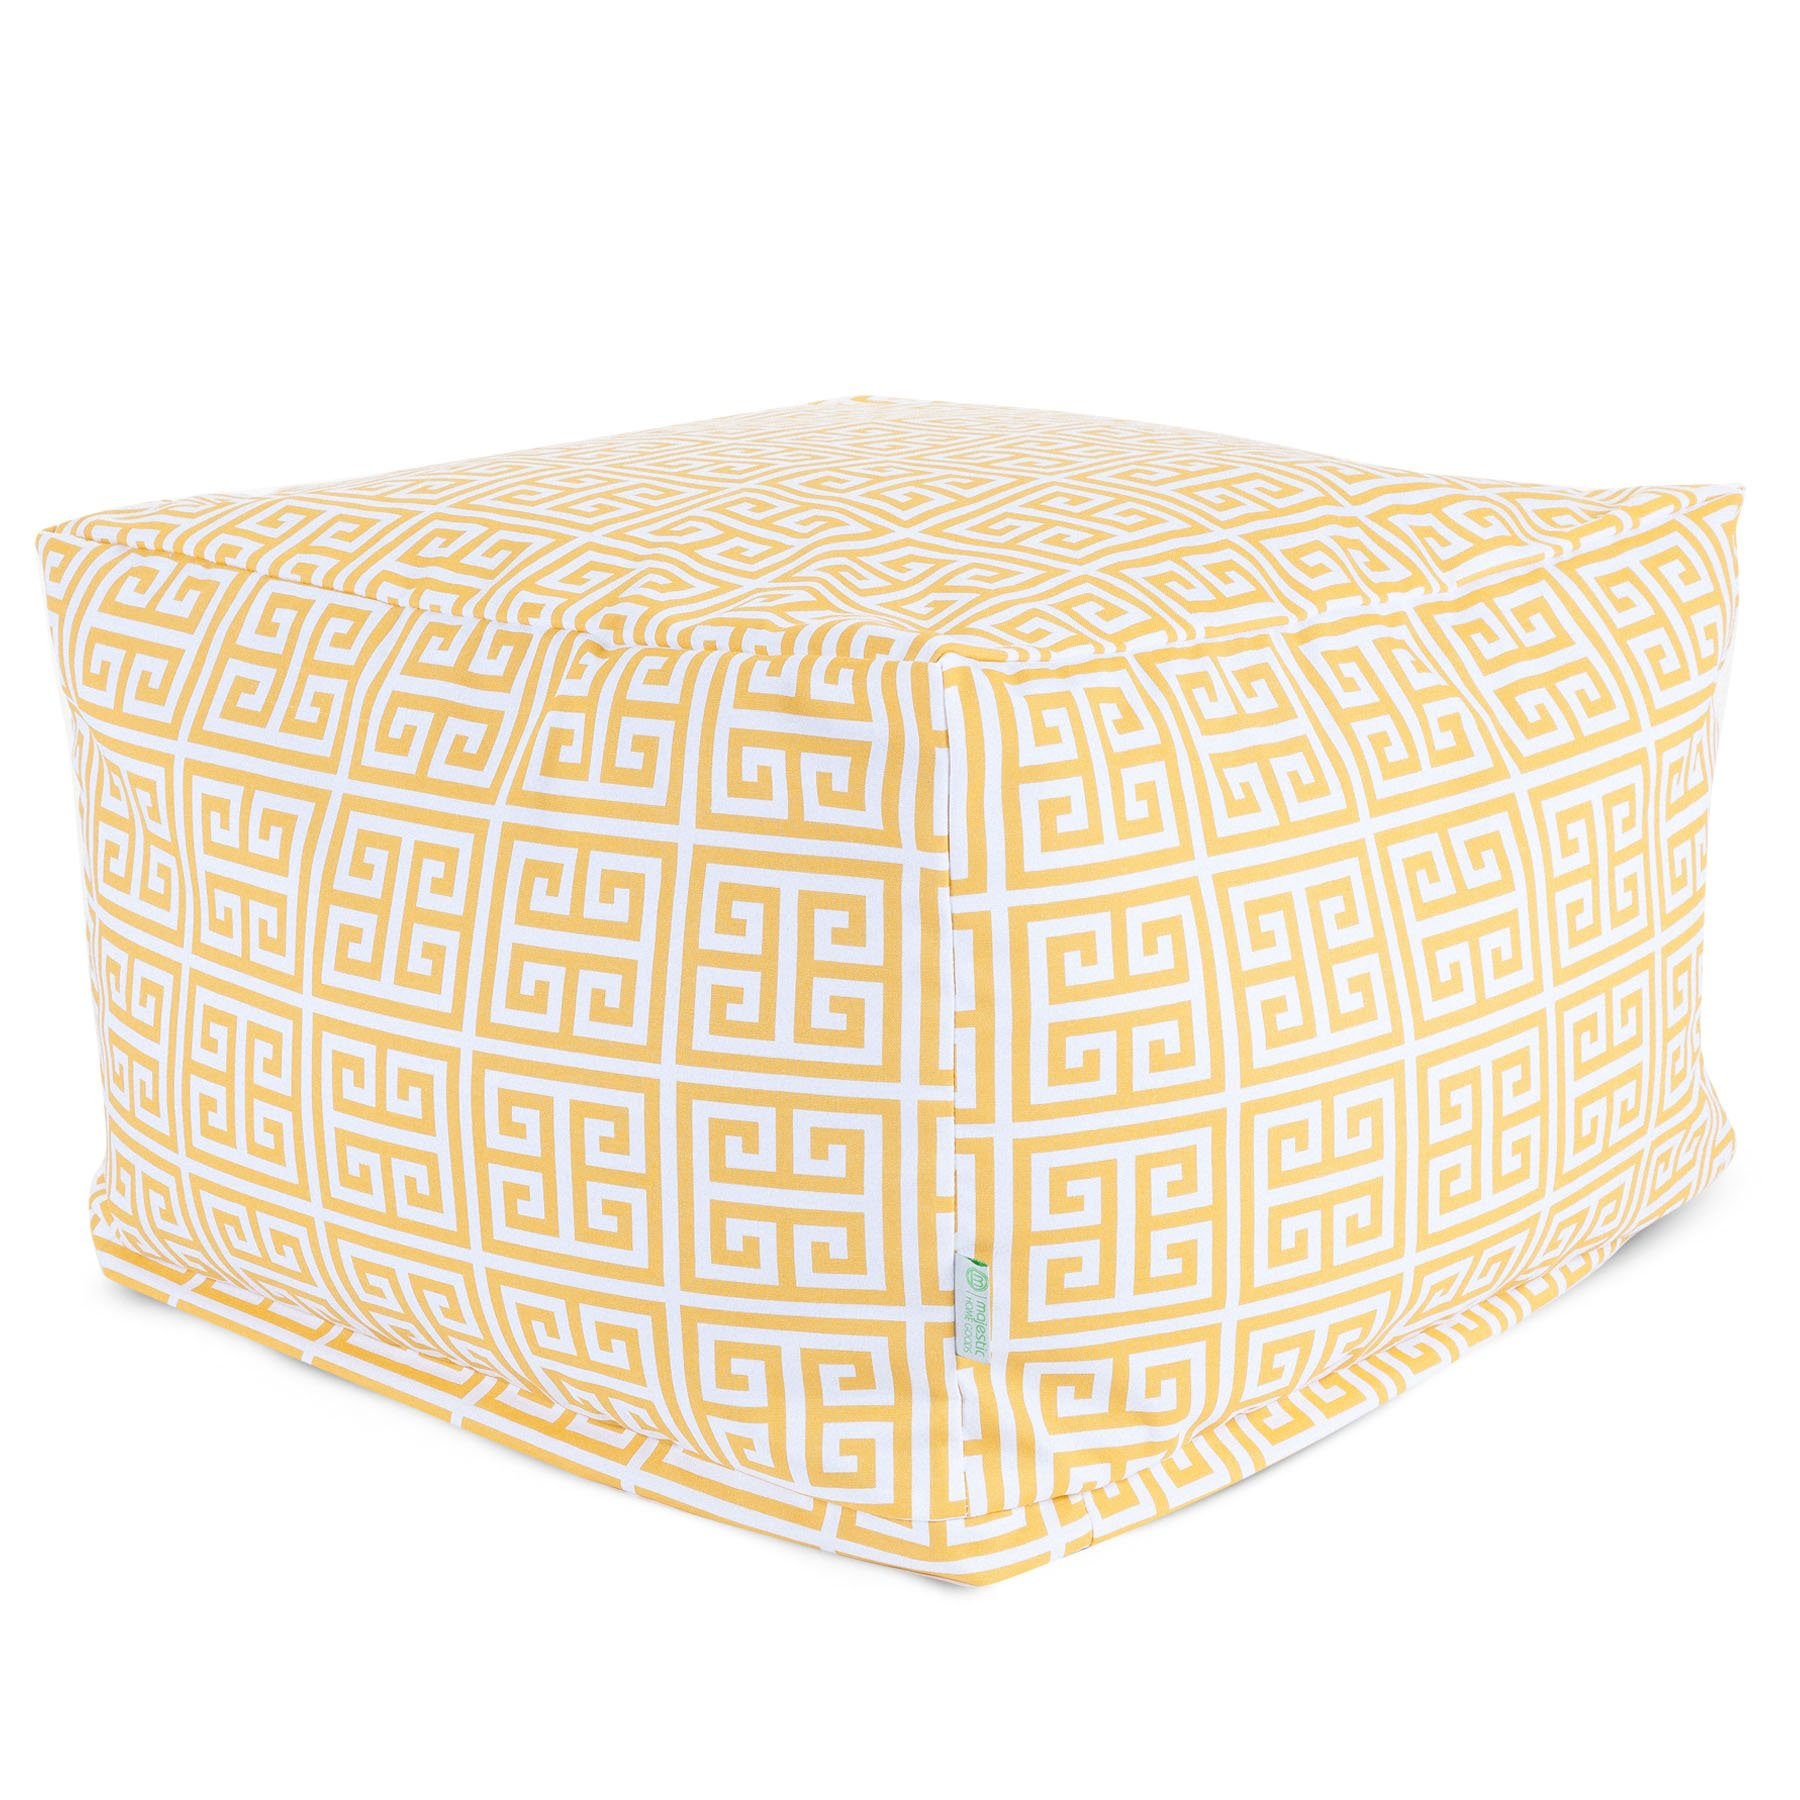 Majestic Home Goods Towers Ottoman, Large, Citrus